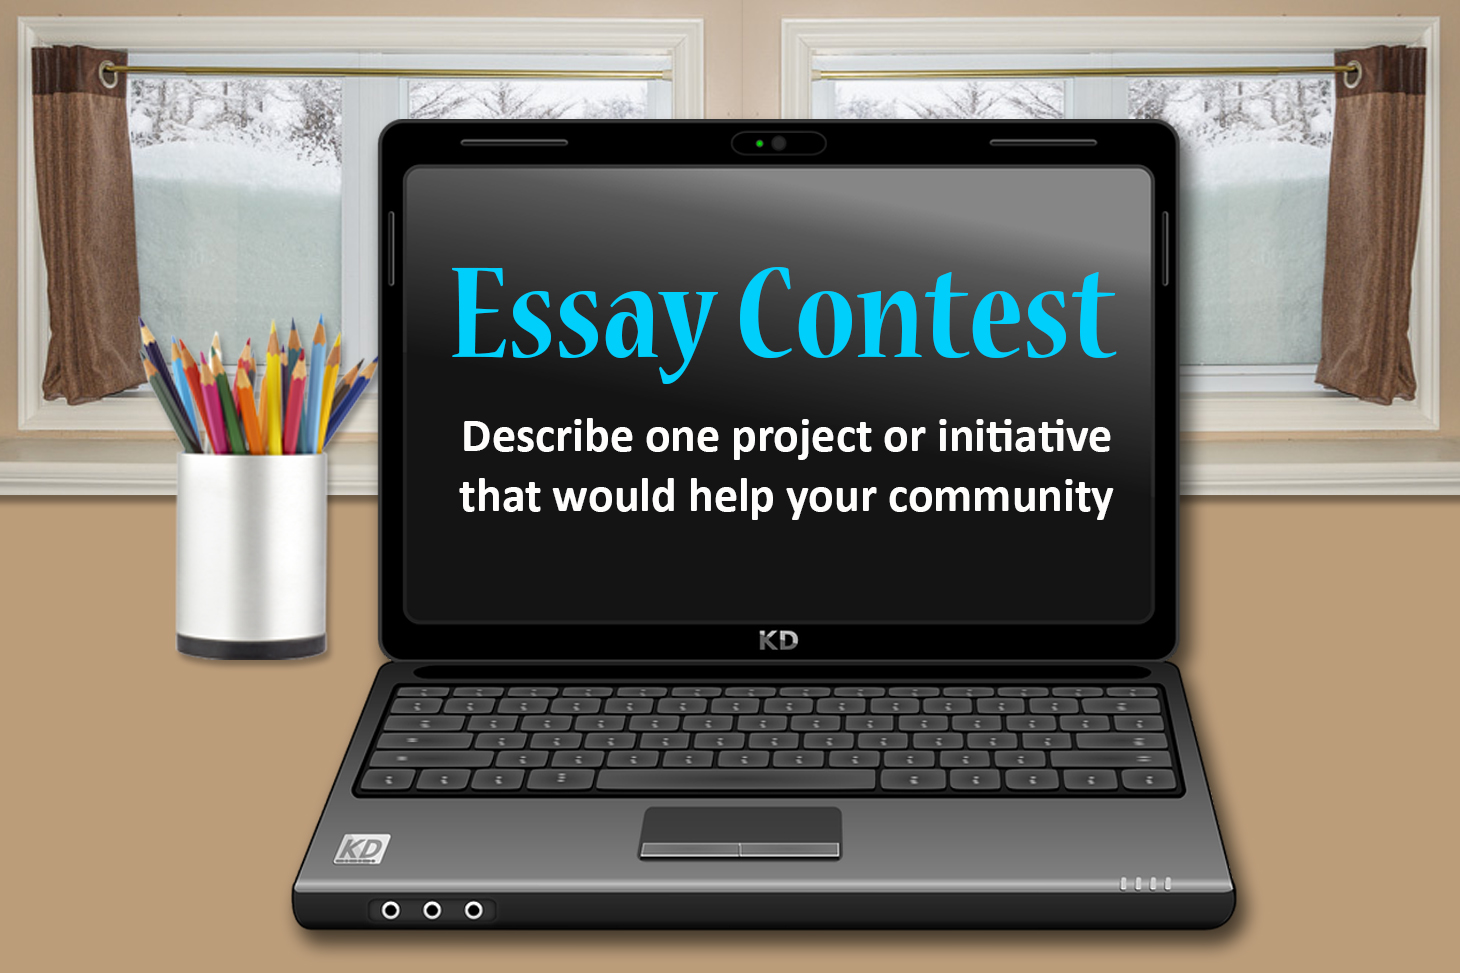 essay contest laptop A 500-word essay on the responsibility of the community in maintaining public safety that answered the question,  what role does the community, and specifically you as a young adult, play in making cambridge a safe and nice place to live.